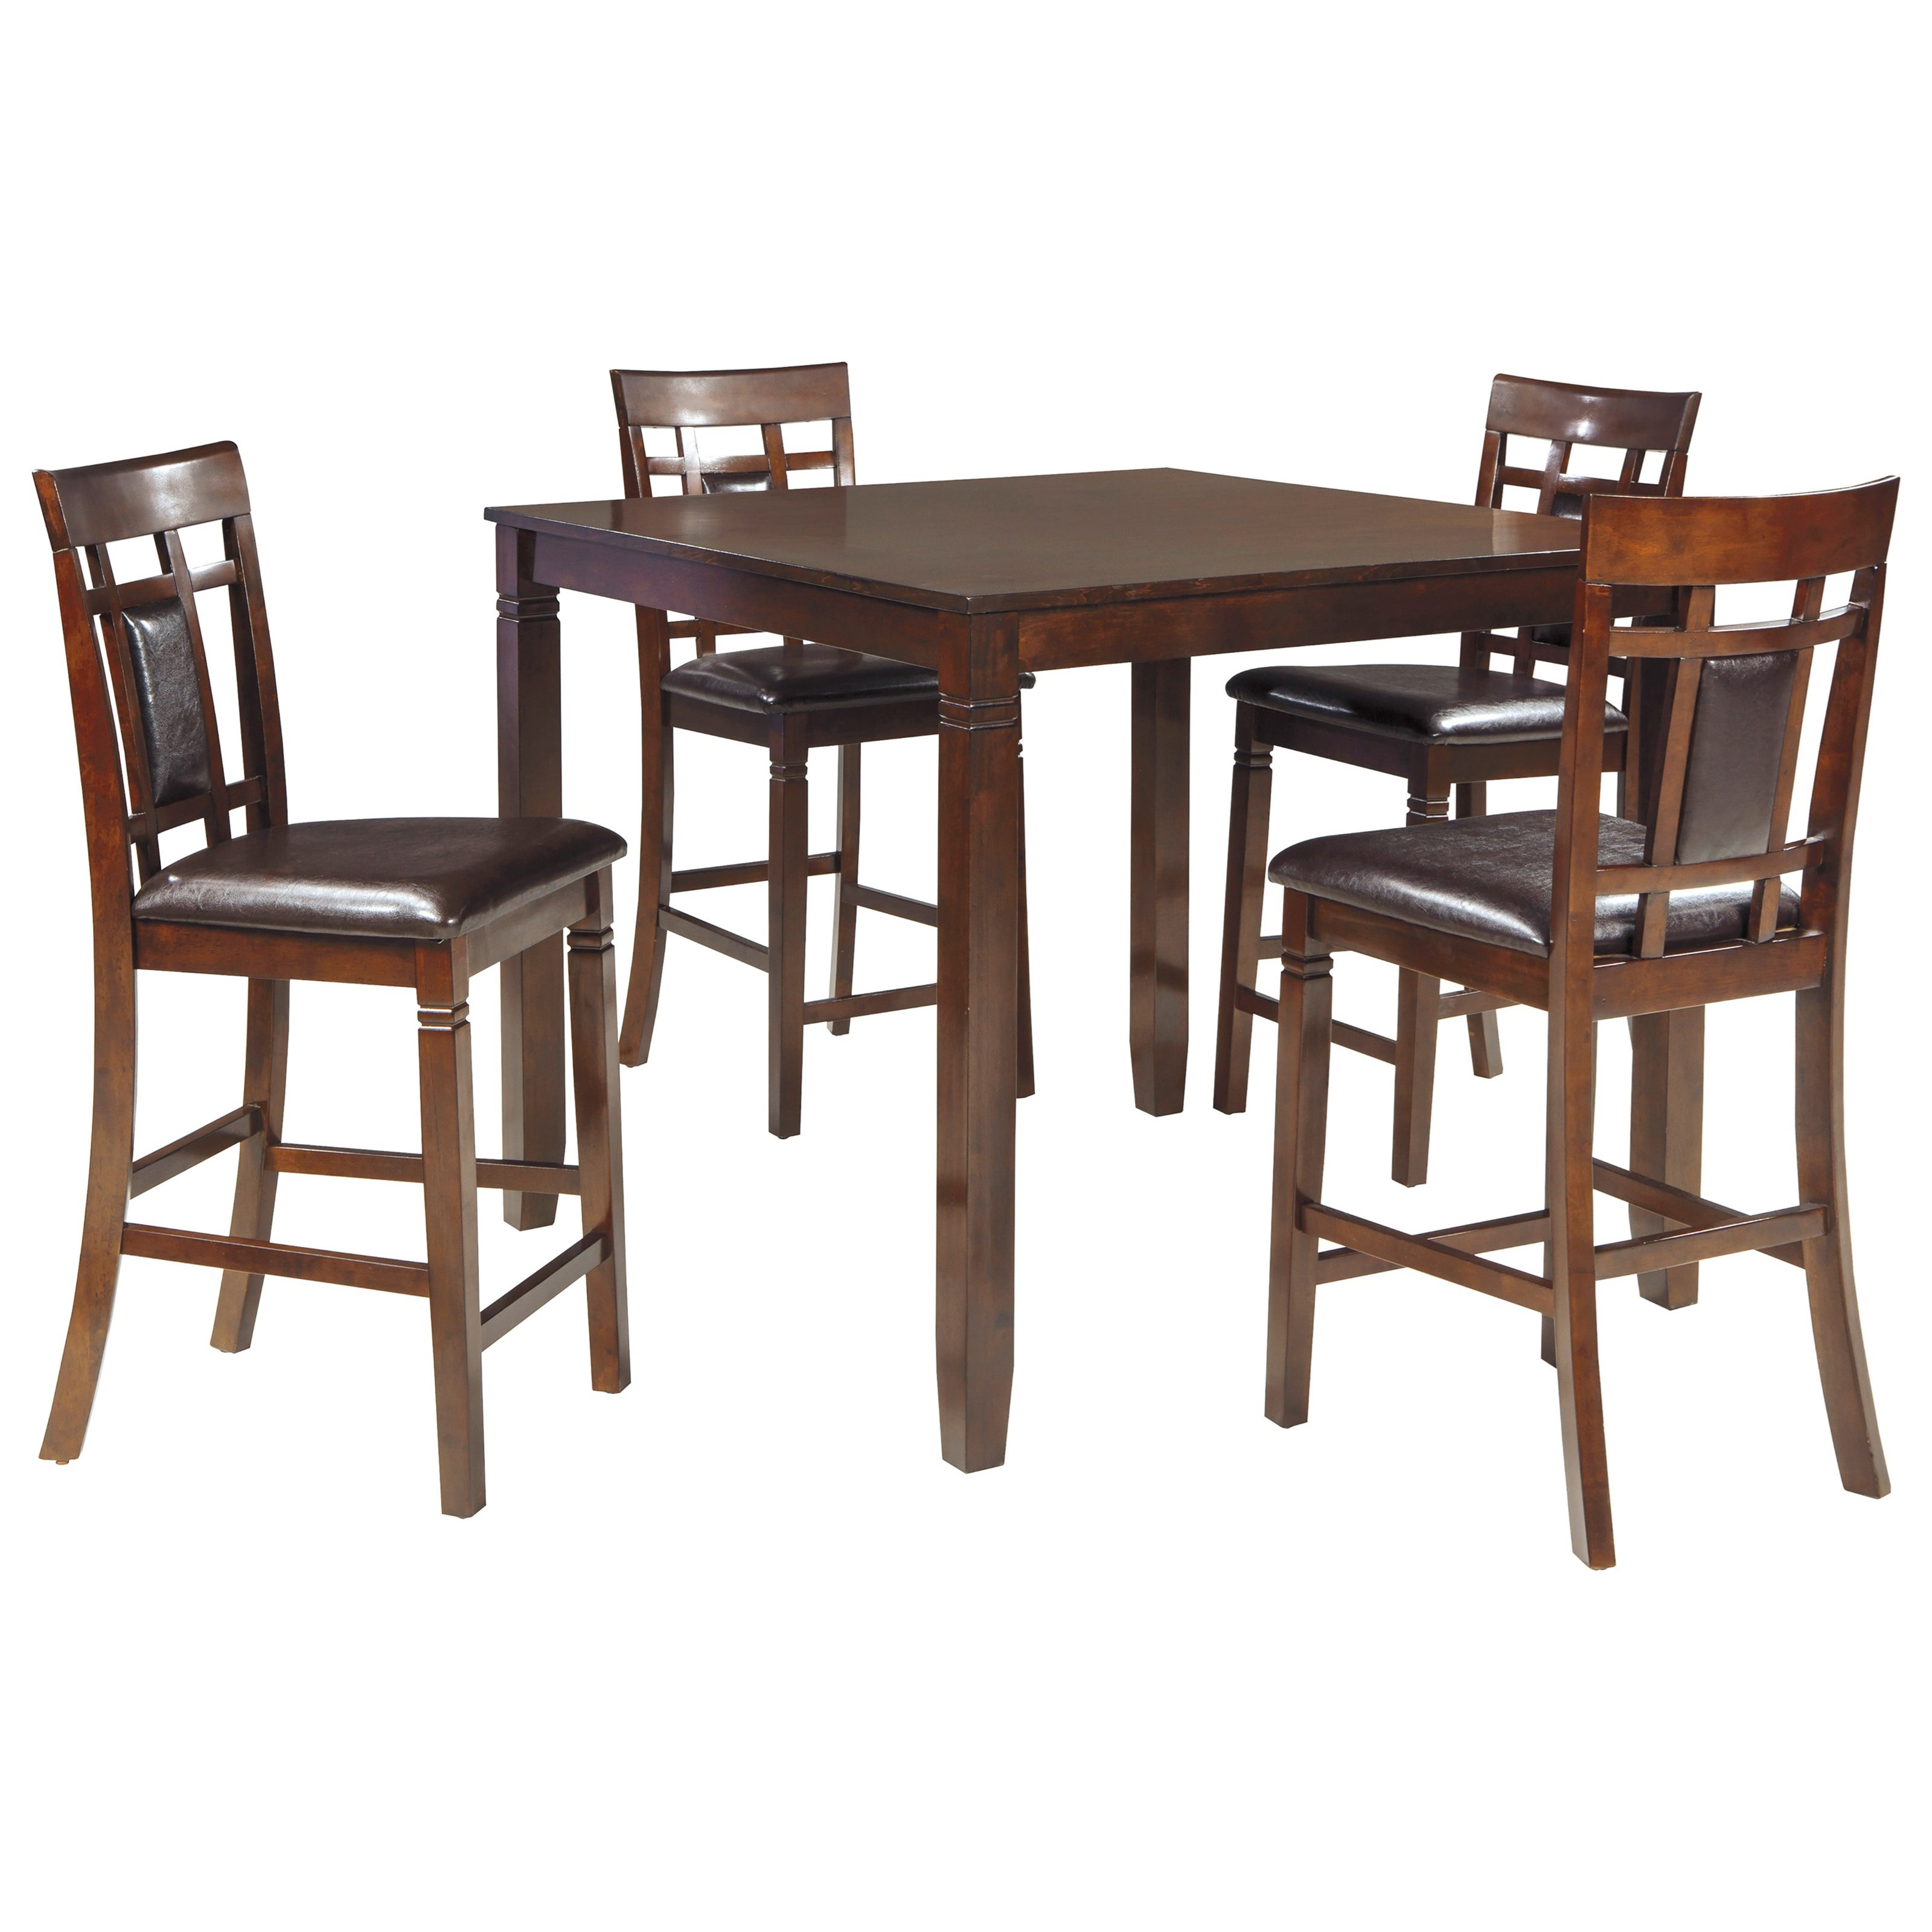 Bennox 5-Piece Dining Room Counter Table Set by Ashley (Signature Design) at Johnny Janosik